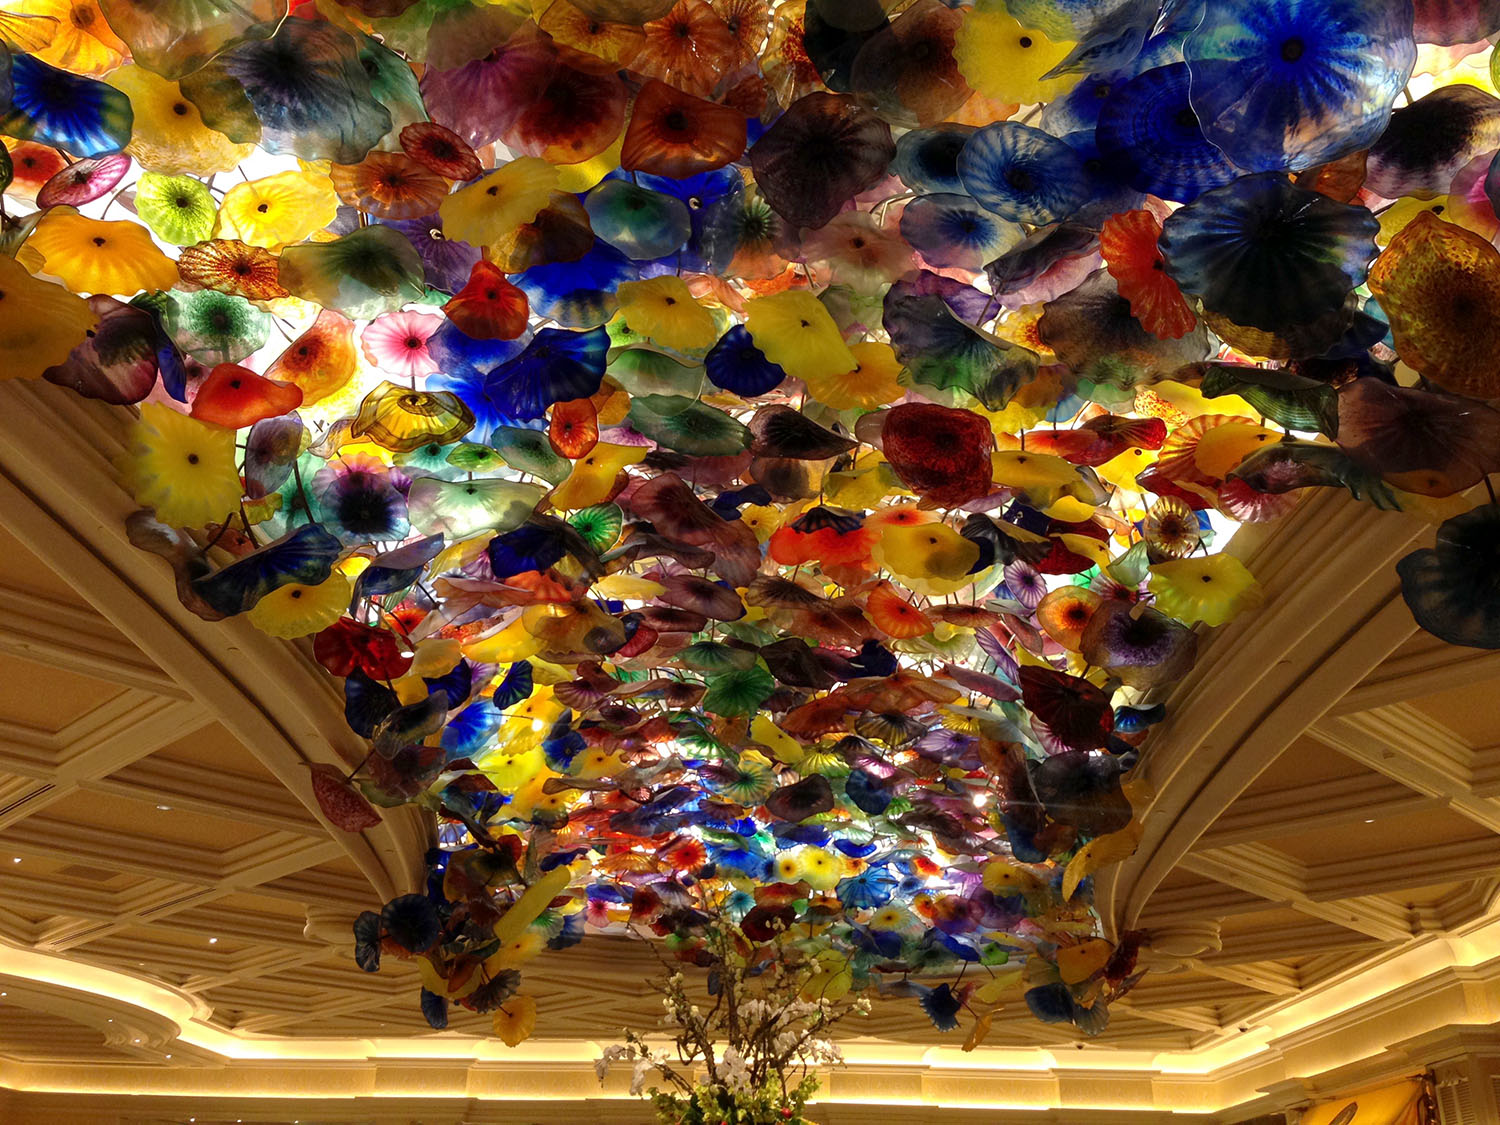 Blown Glass ceiling Las Vegas on a Budget